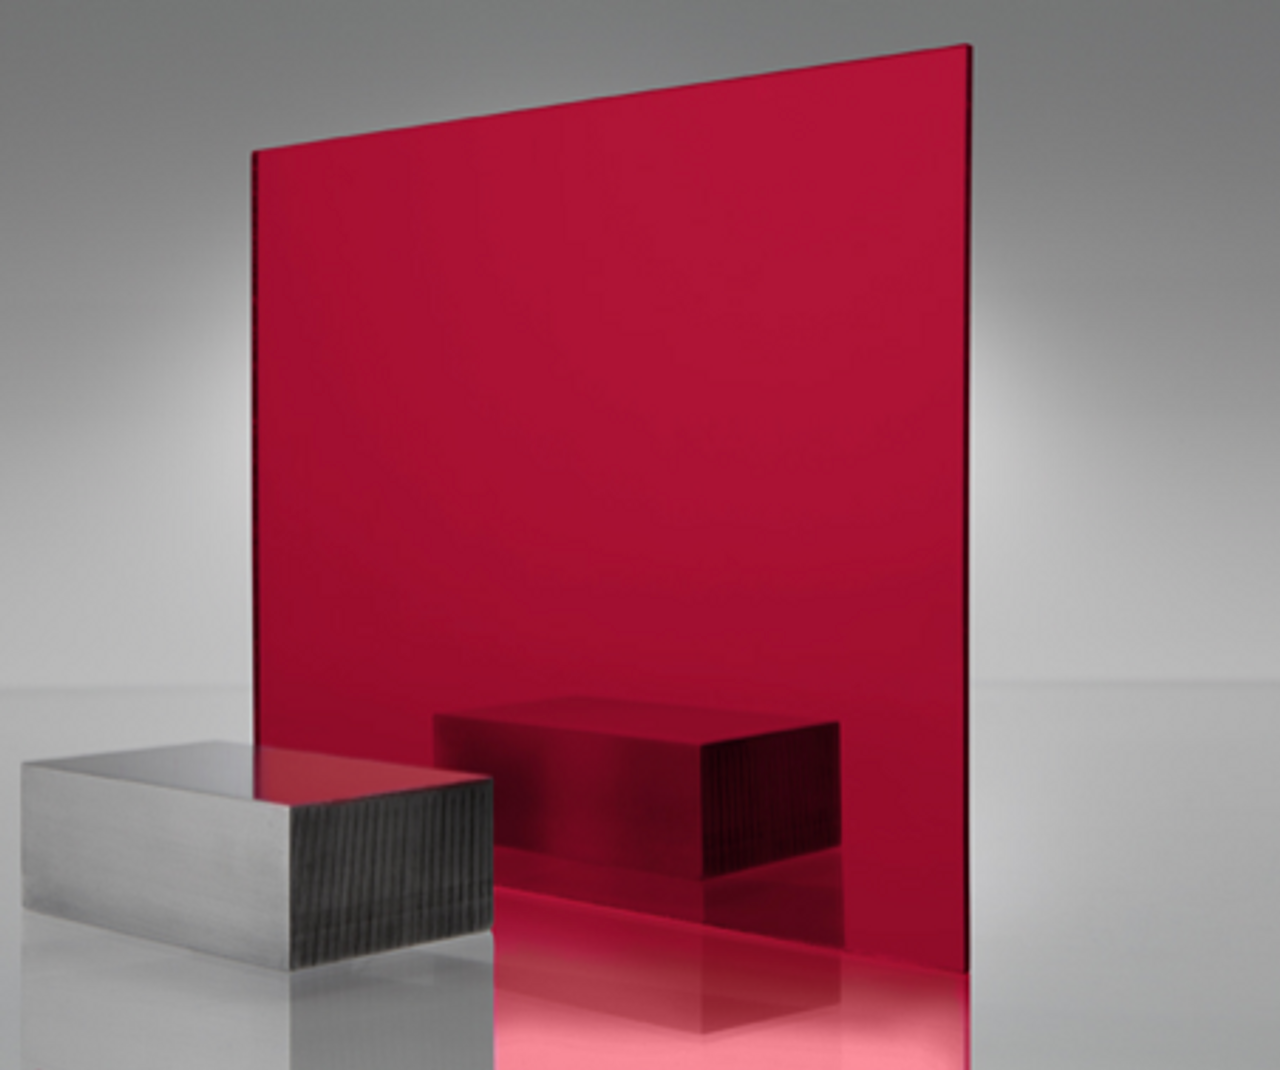 4x8' Mirrored Acrylic RED Med.